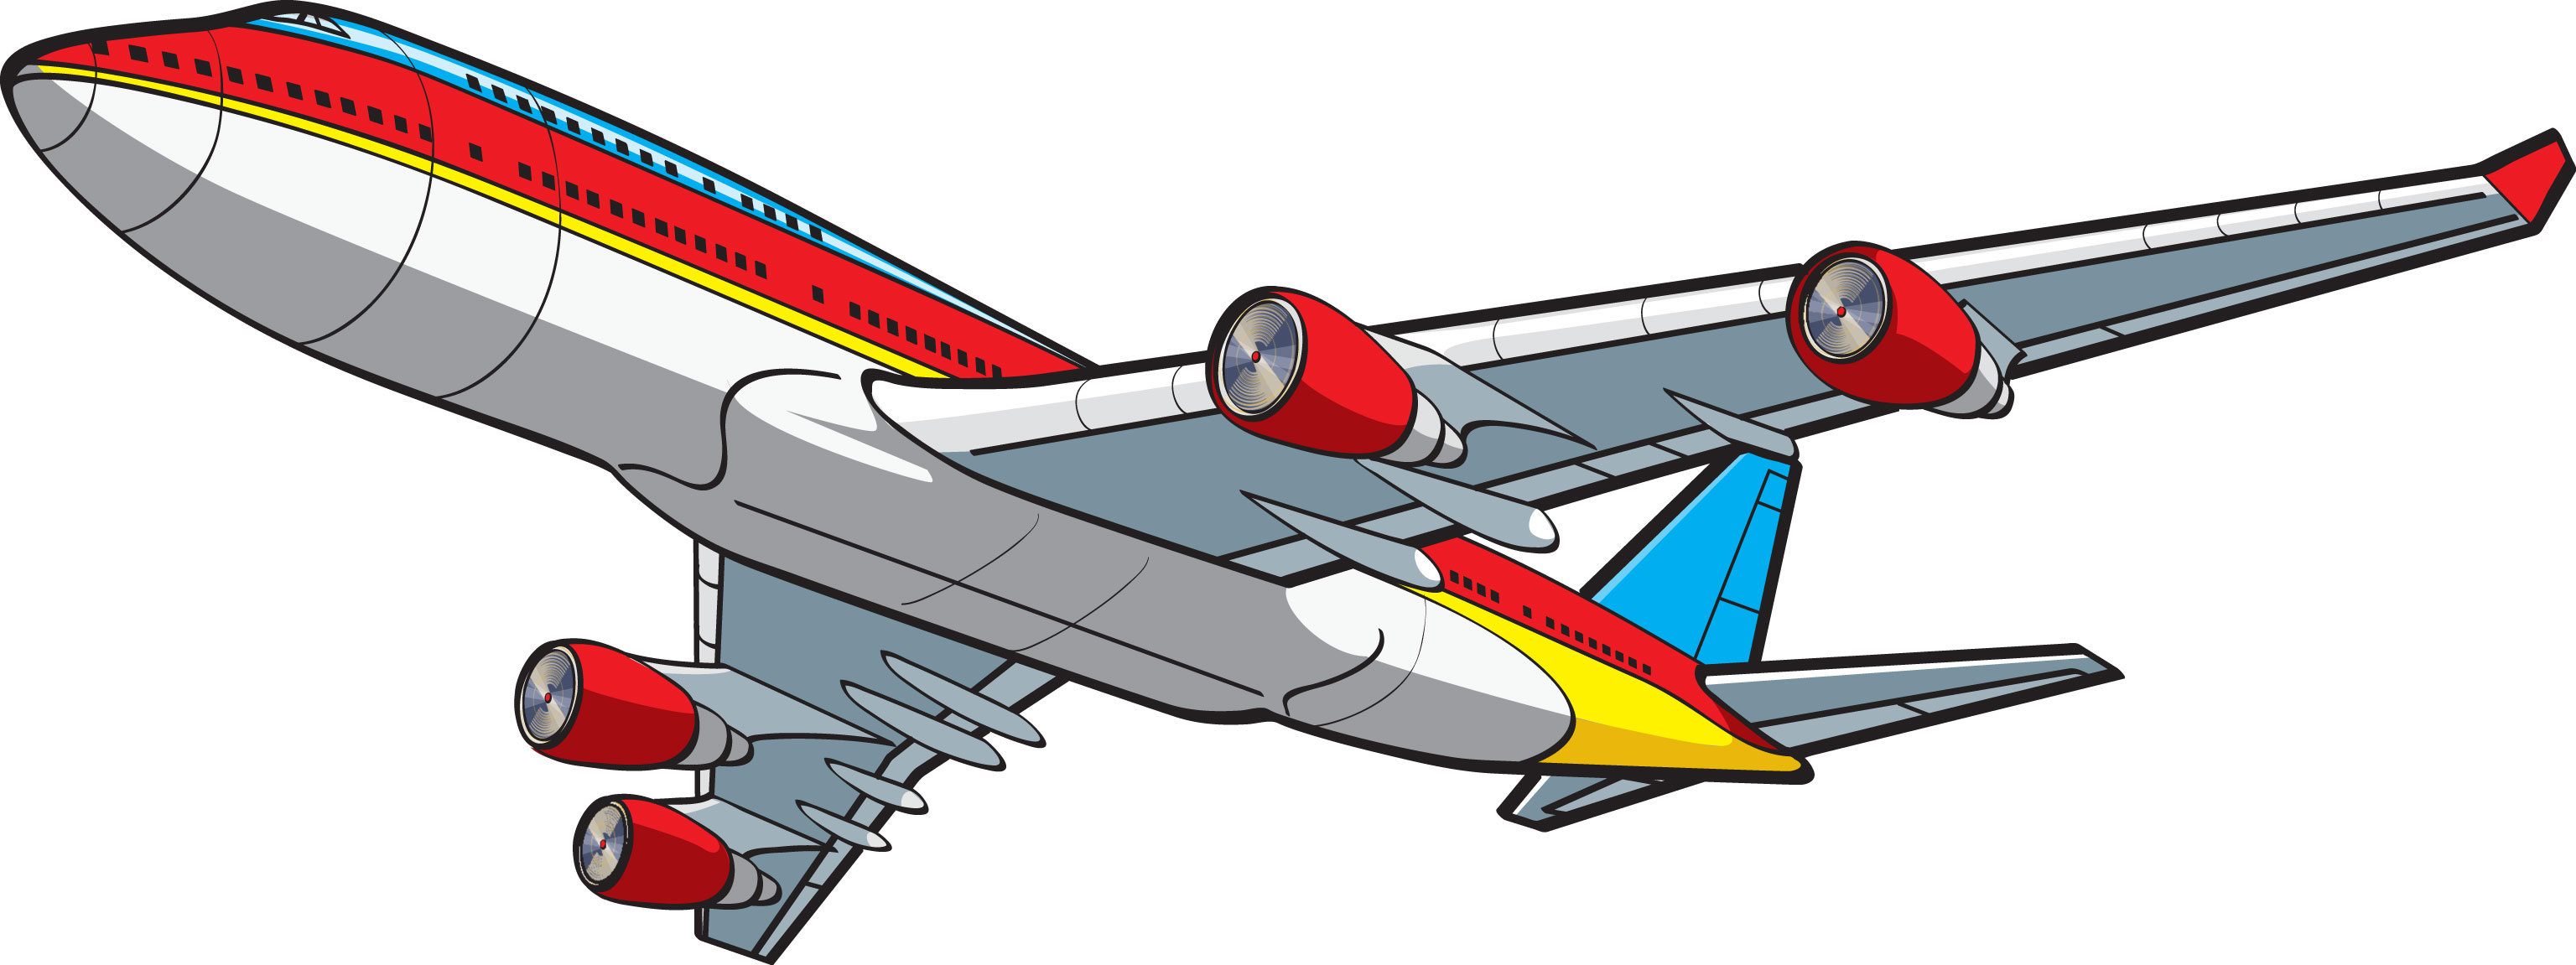 Clipart boeing 747.